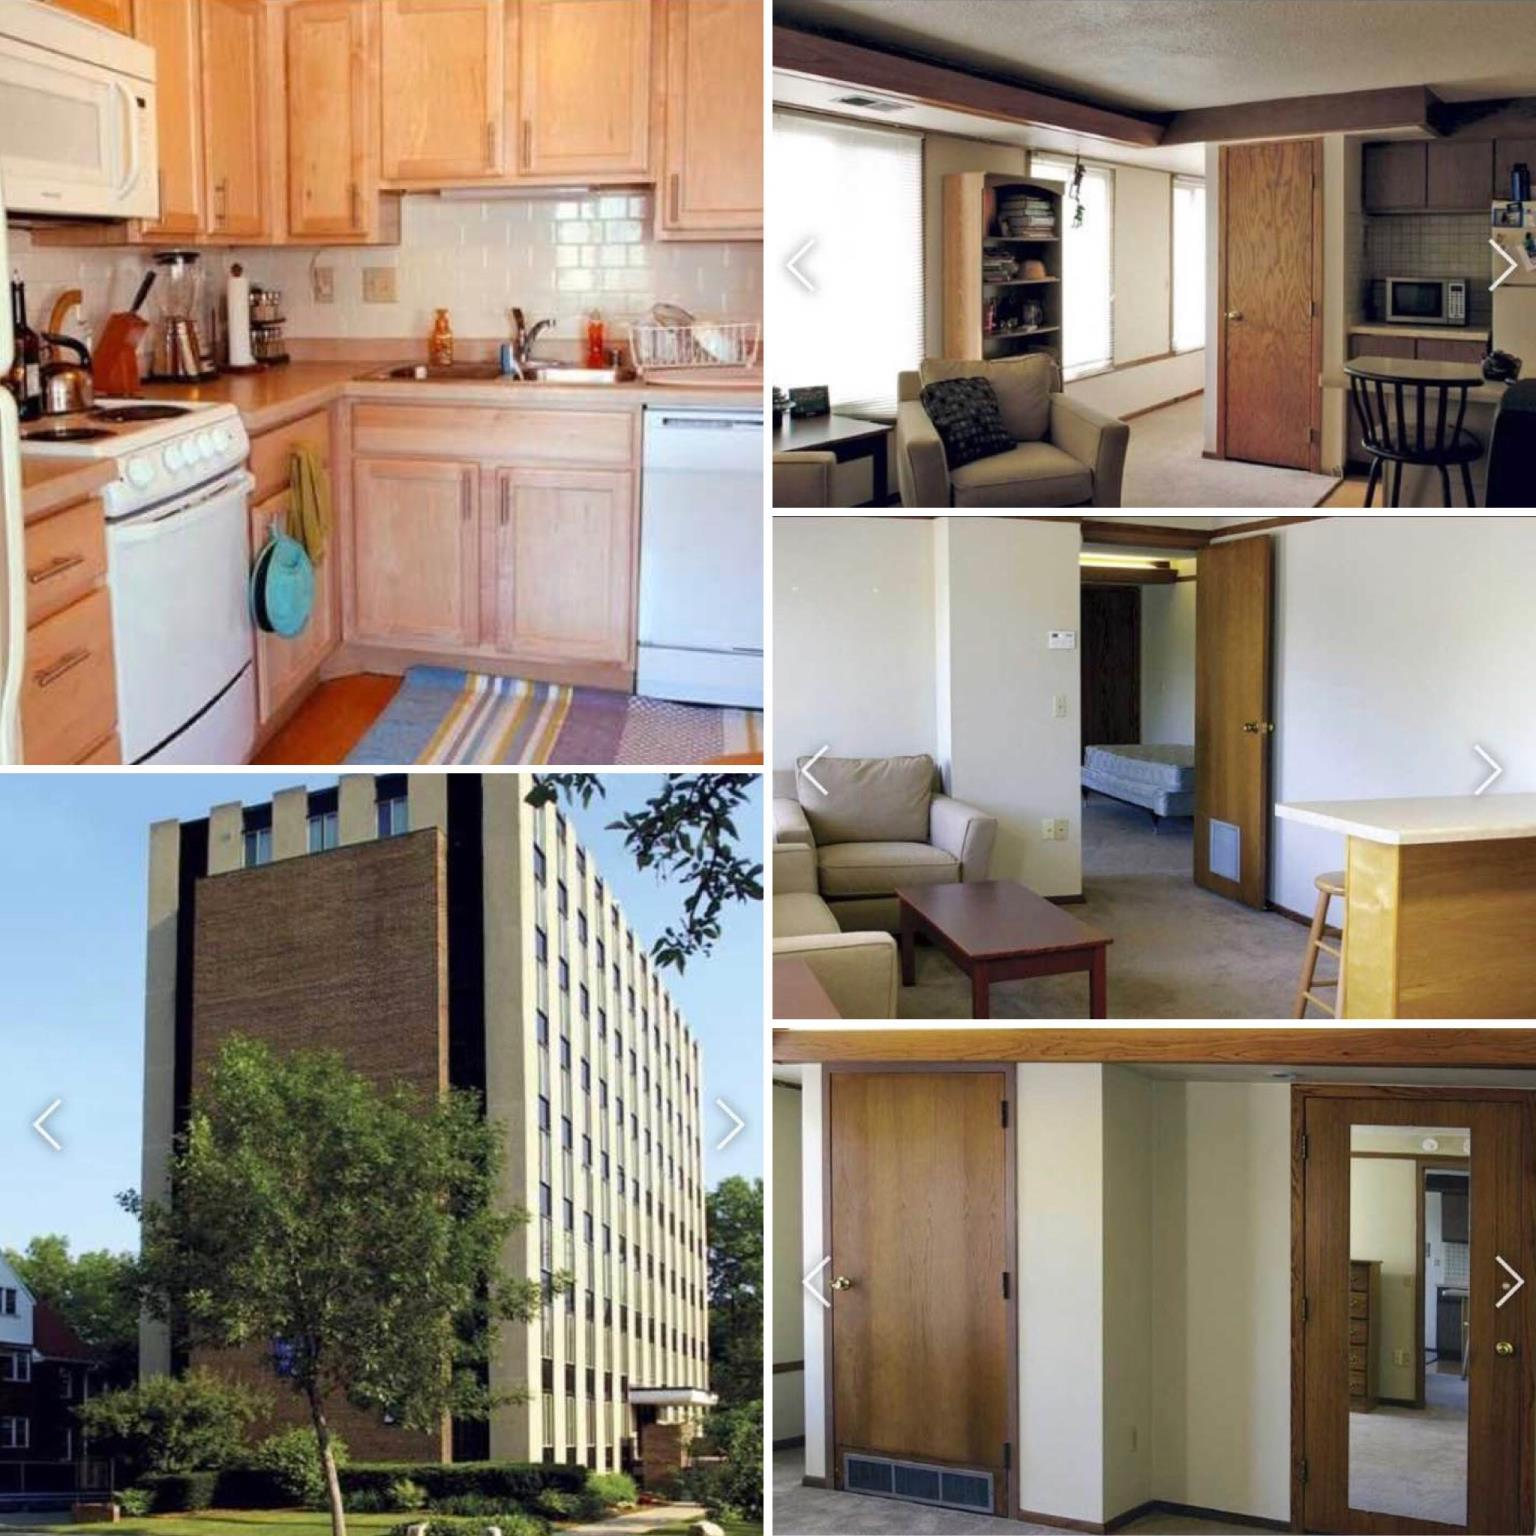 Nice apartment with a HUGE bedroom near UWM